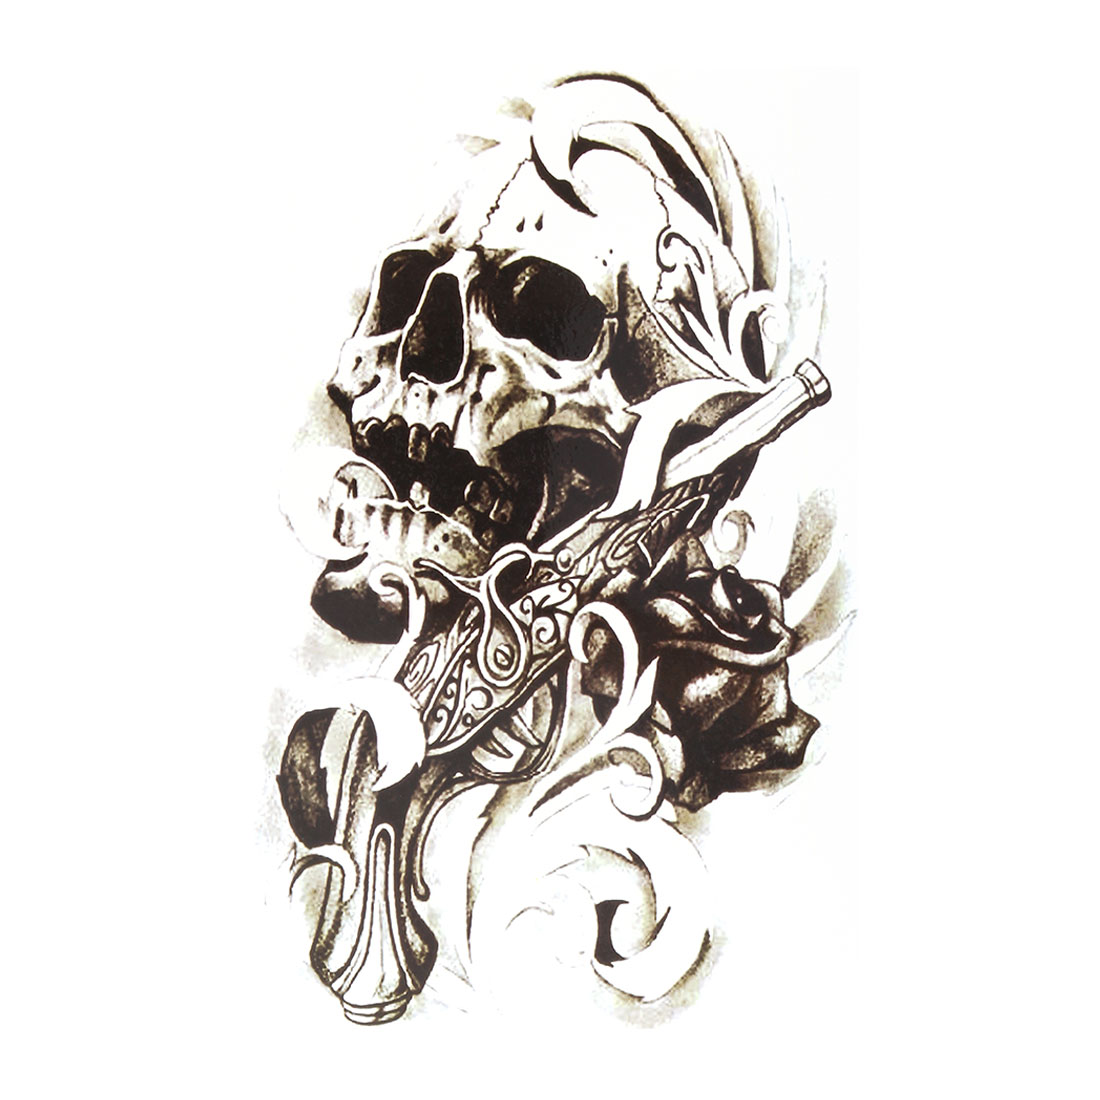 Man Skull Pattern Removable Body Art Decoration Paper Sticker Decal Temporary Tattoo